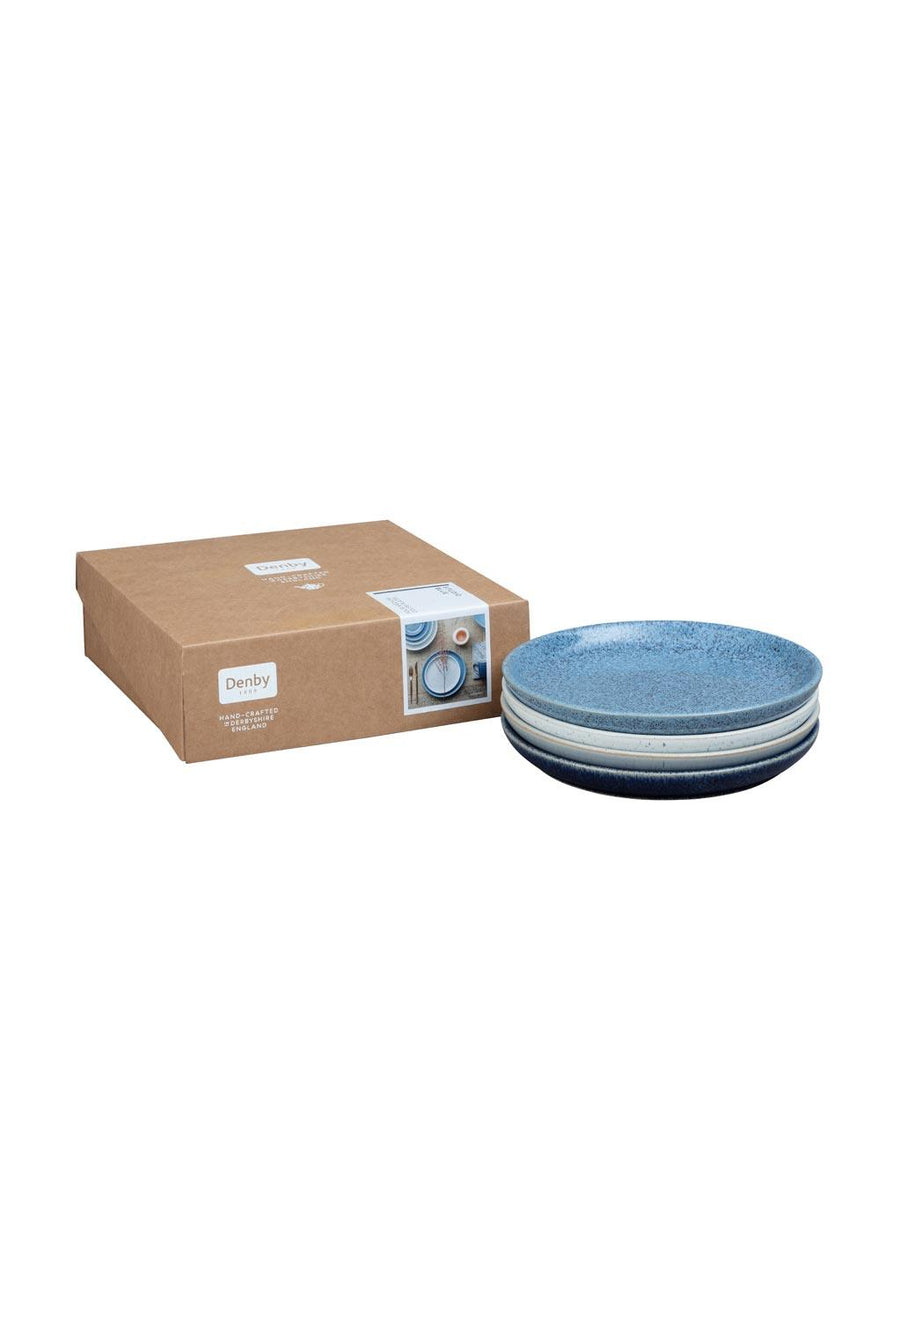 Denby Studio Blue 4 Piece Medium Coupe Plate Set